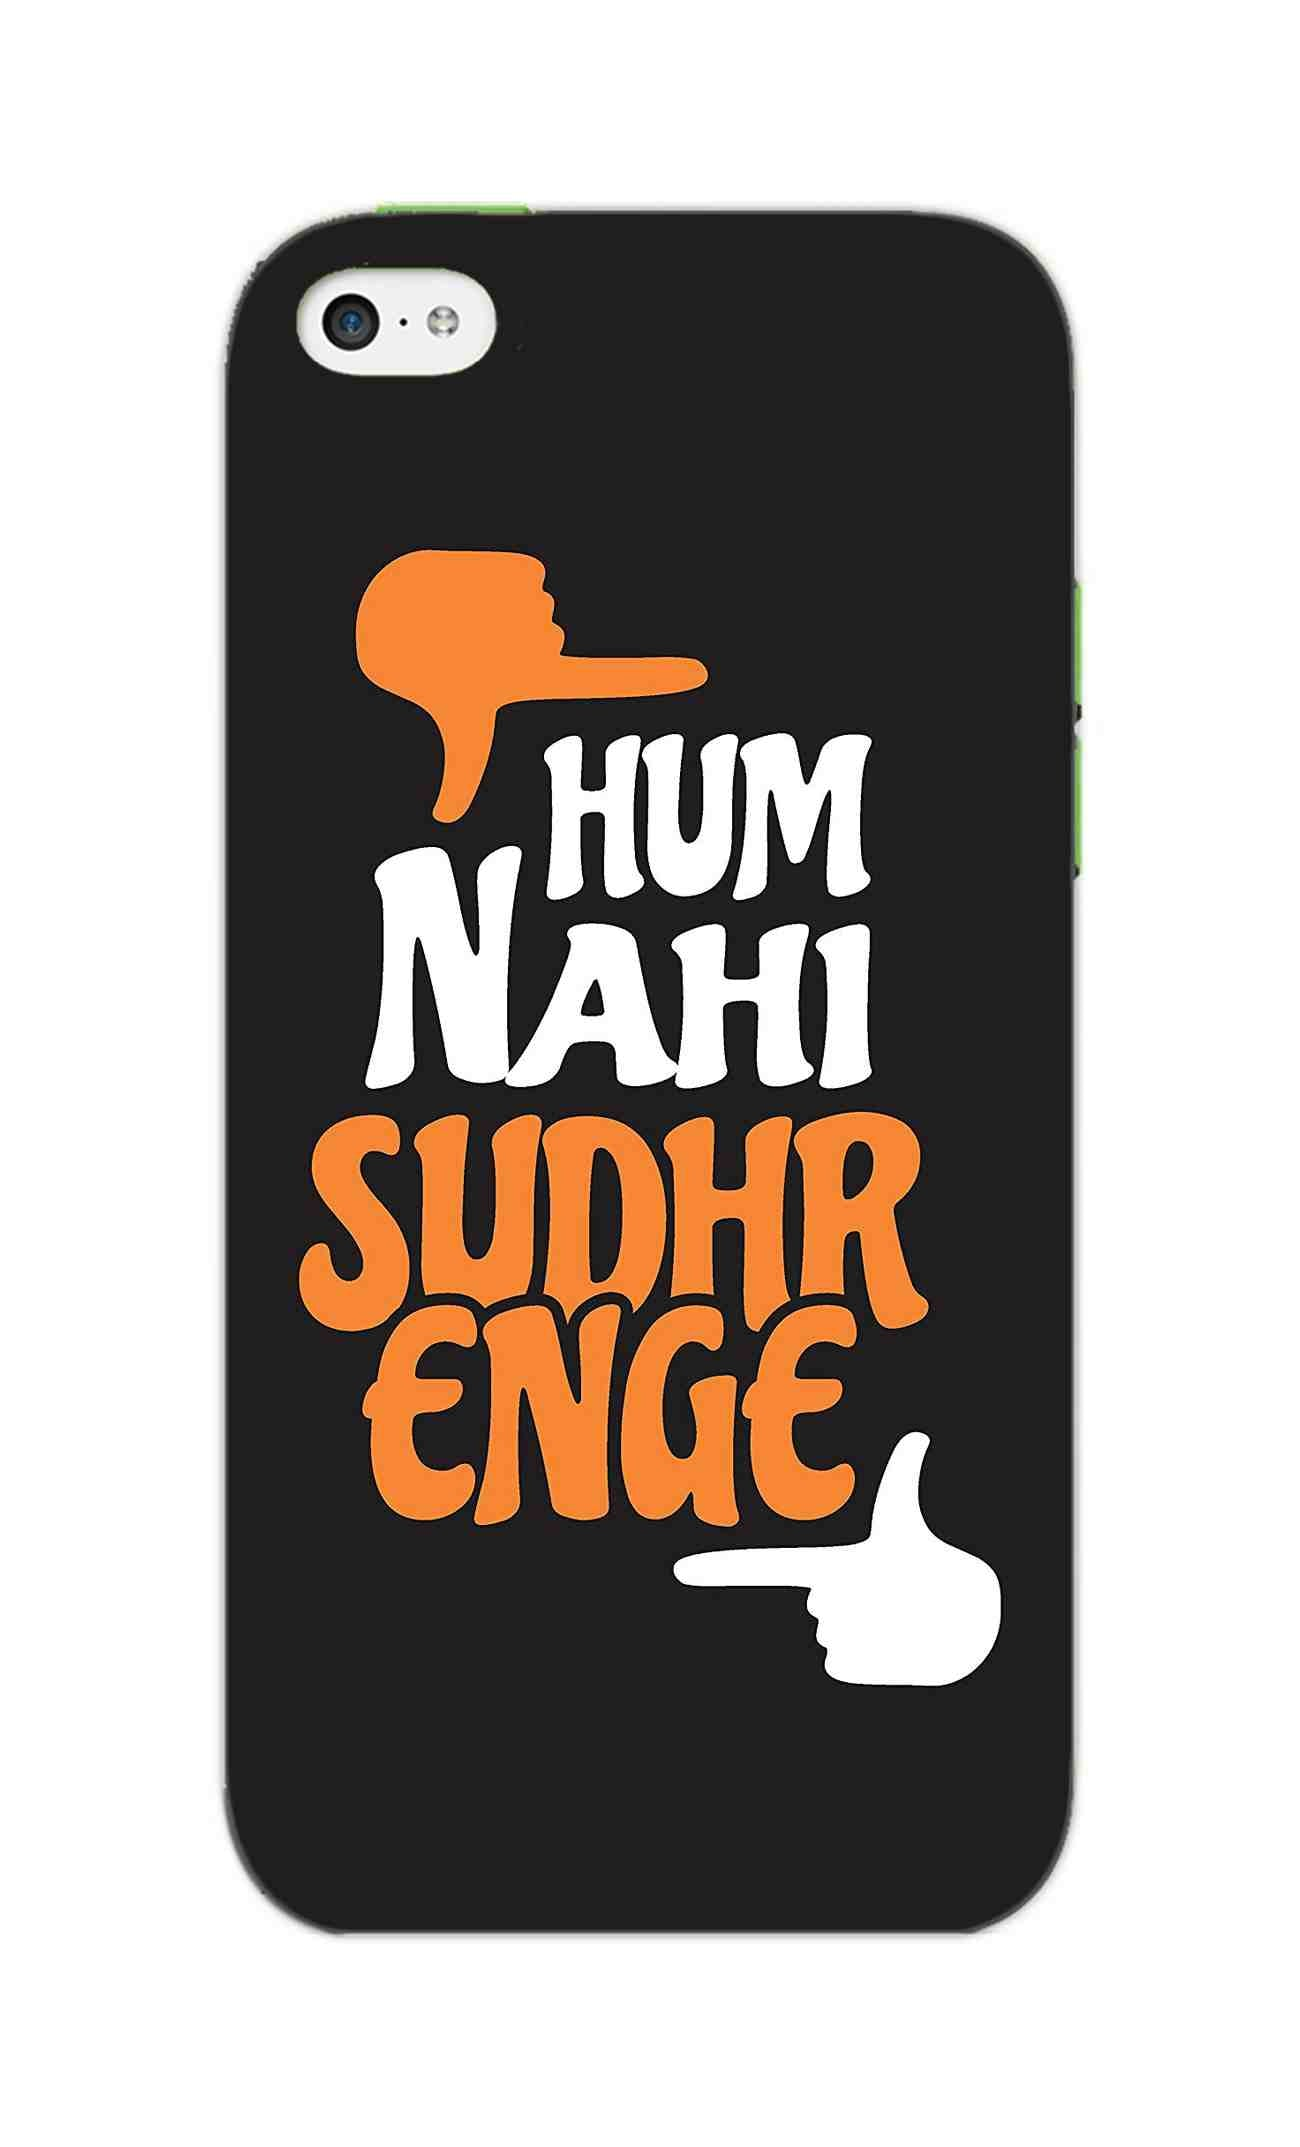 Buy Hum Nahi Sudhrenge Funny Quote Iphone 5s Mobile Cover Case Online India 2020 Madanyu